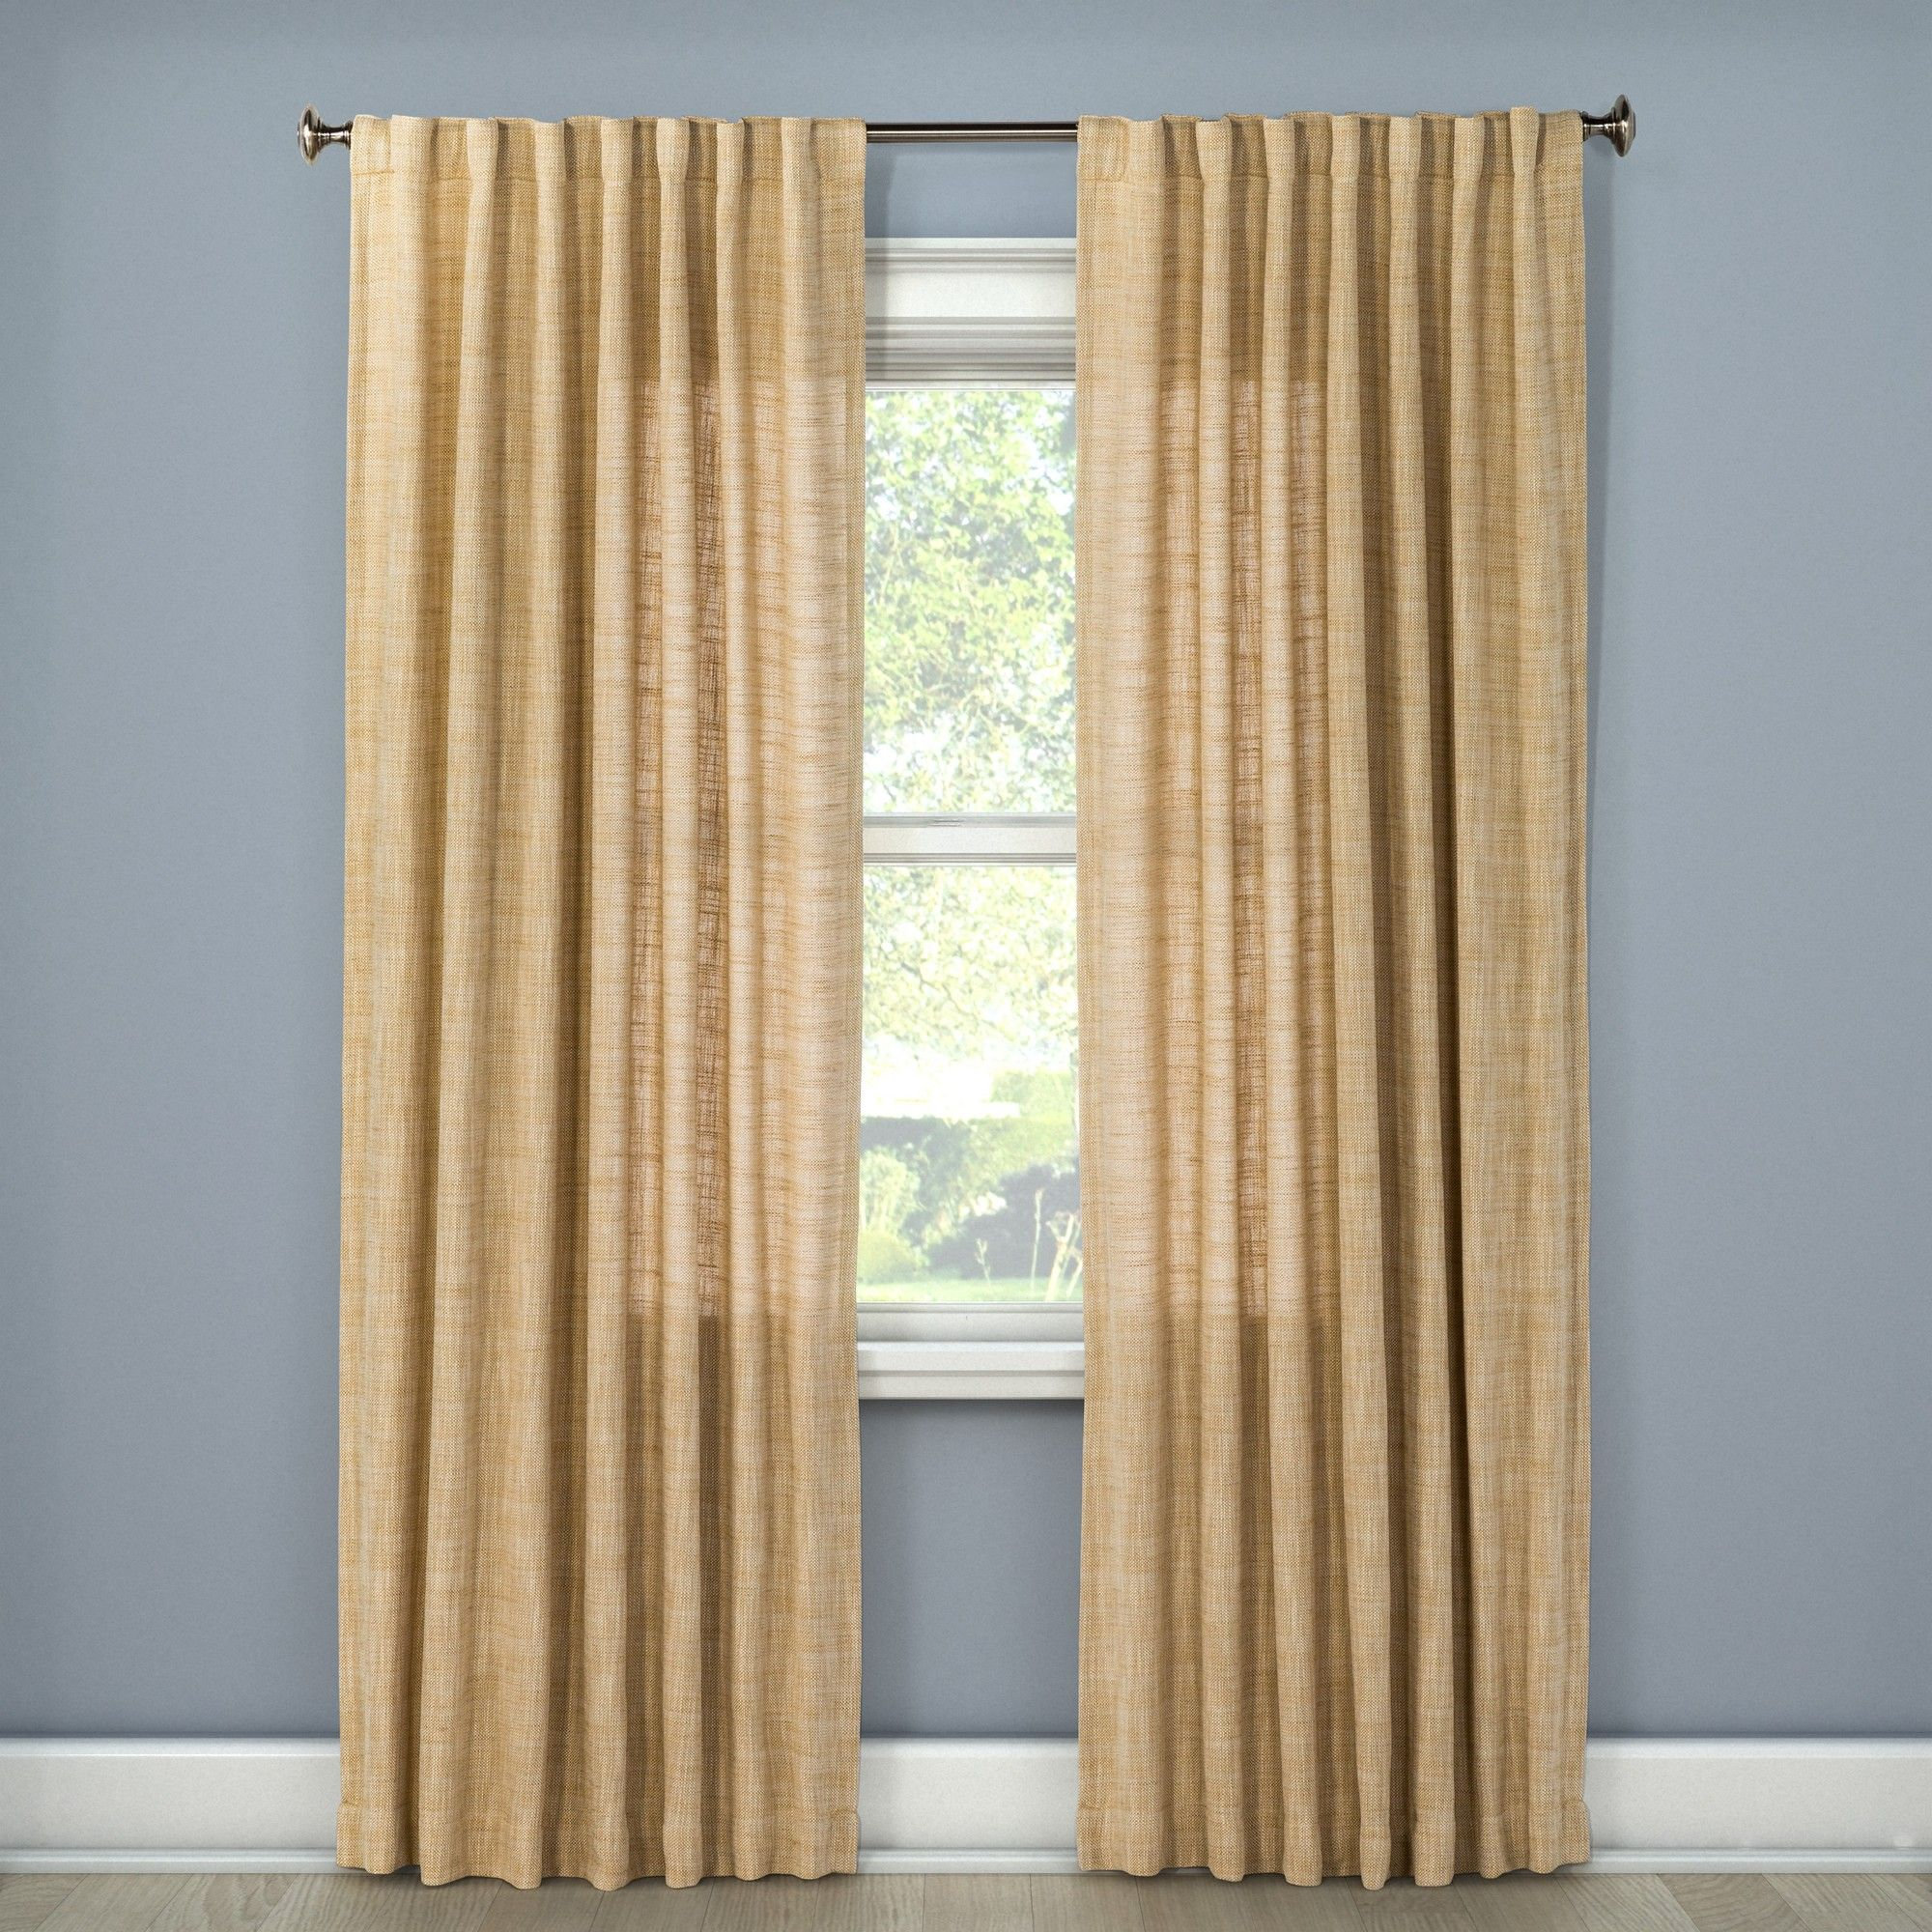 Cheap window coverings  textured weave back tab window curtain panel wheat